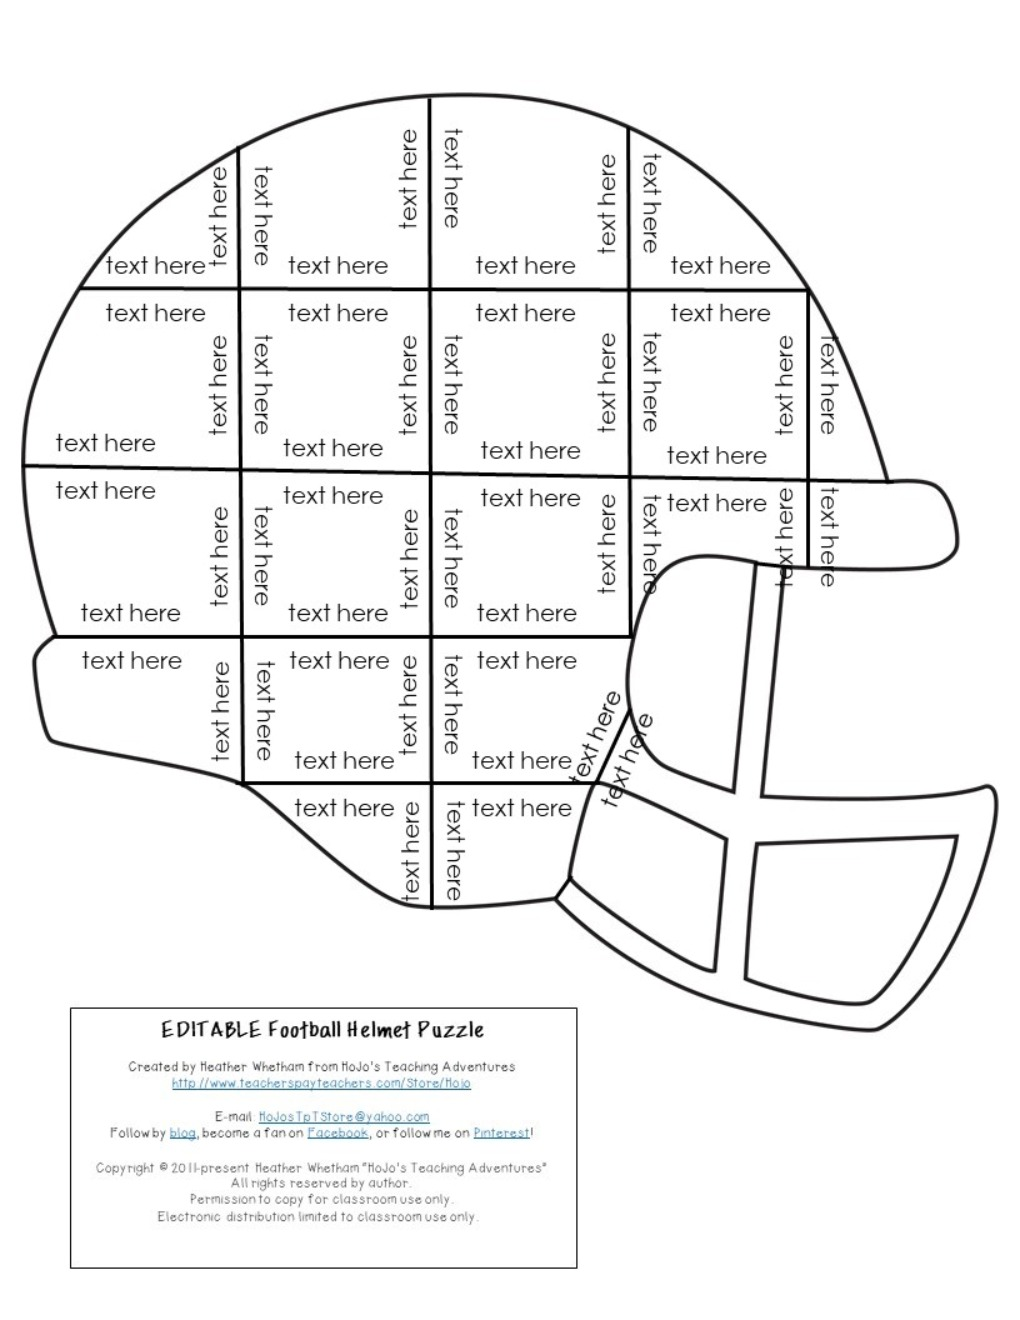 EDITABLE Football Helmet Puzzles for Elementary or Middle School